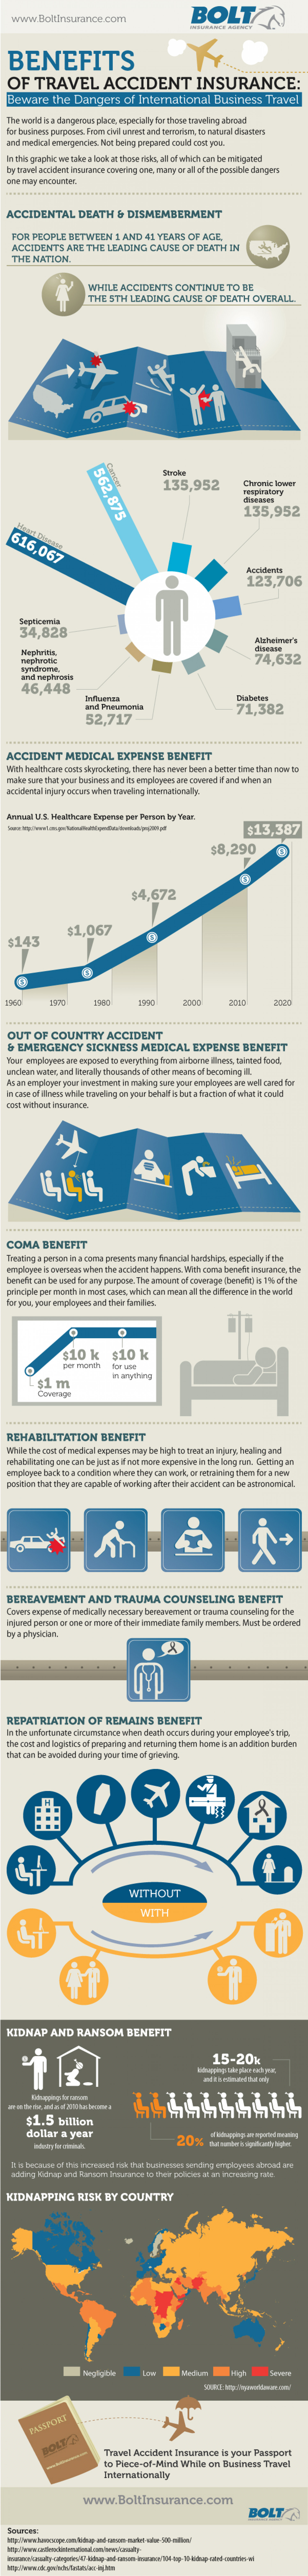 Dangers of Business Travel Infographic Infographic